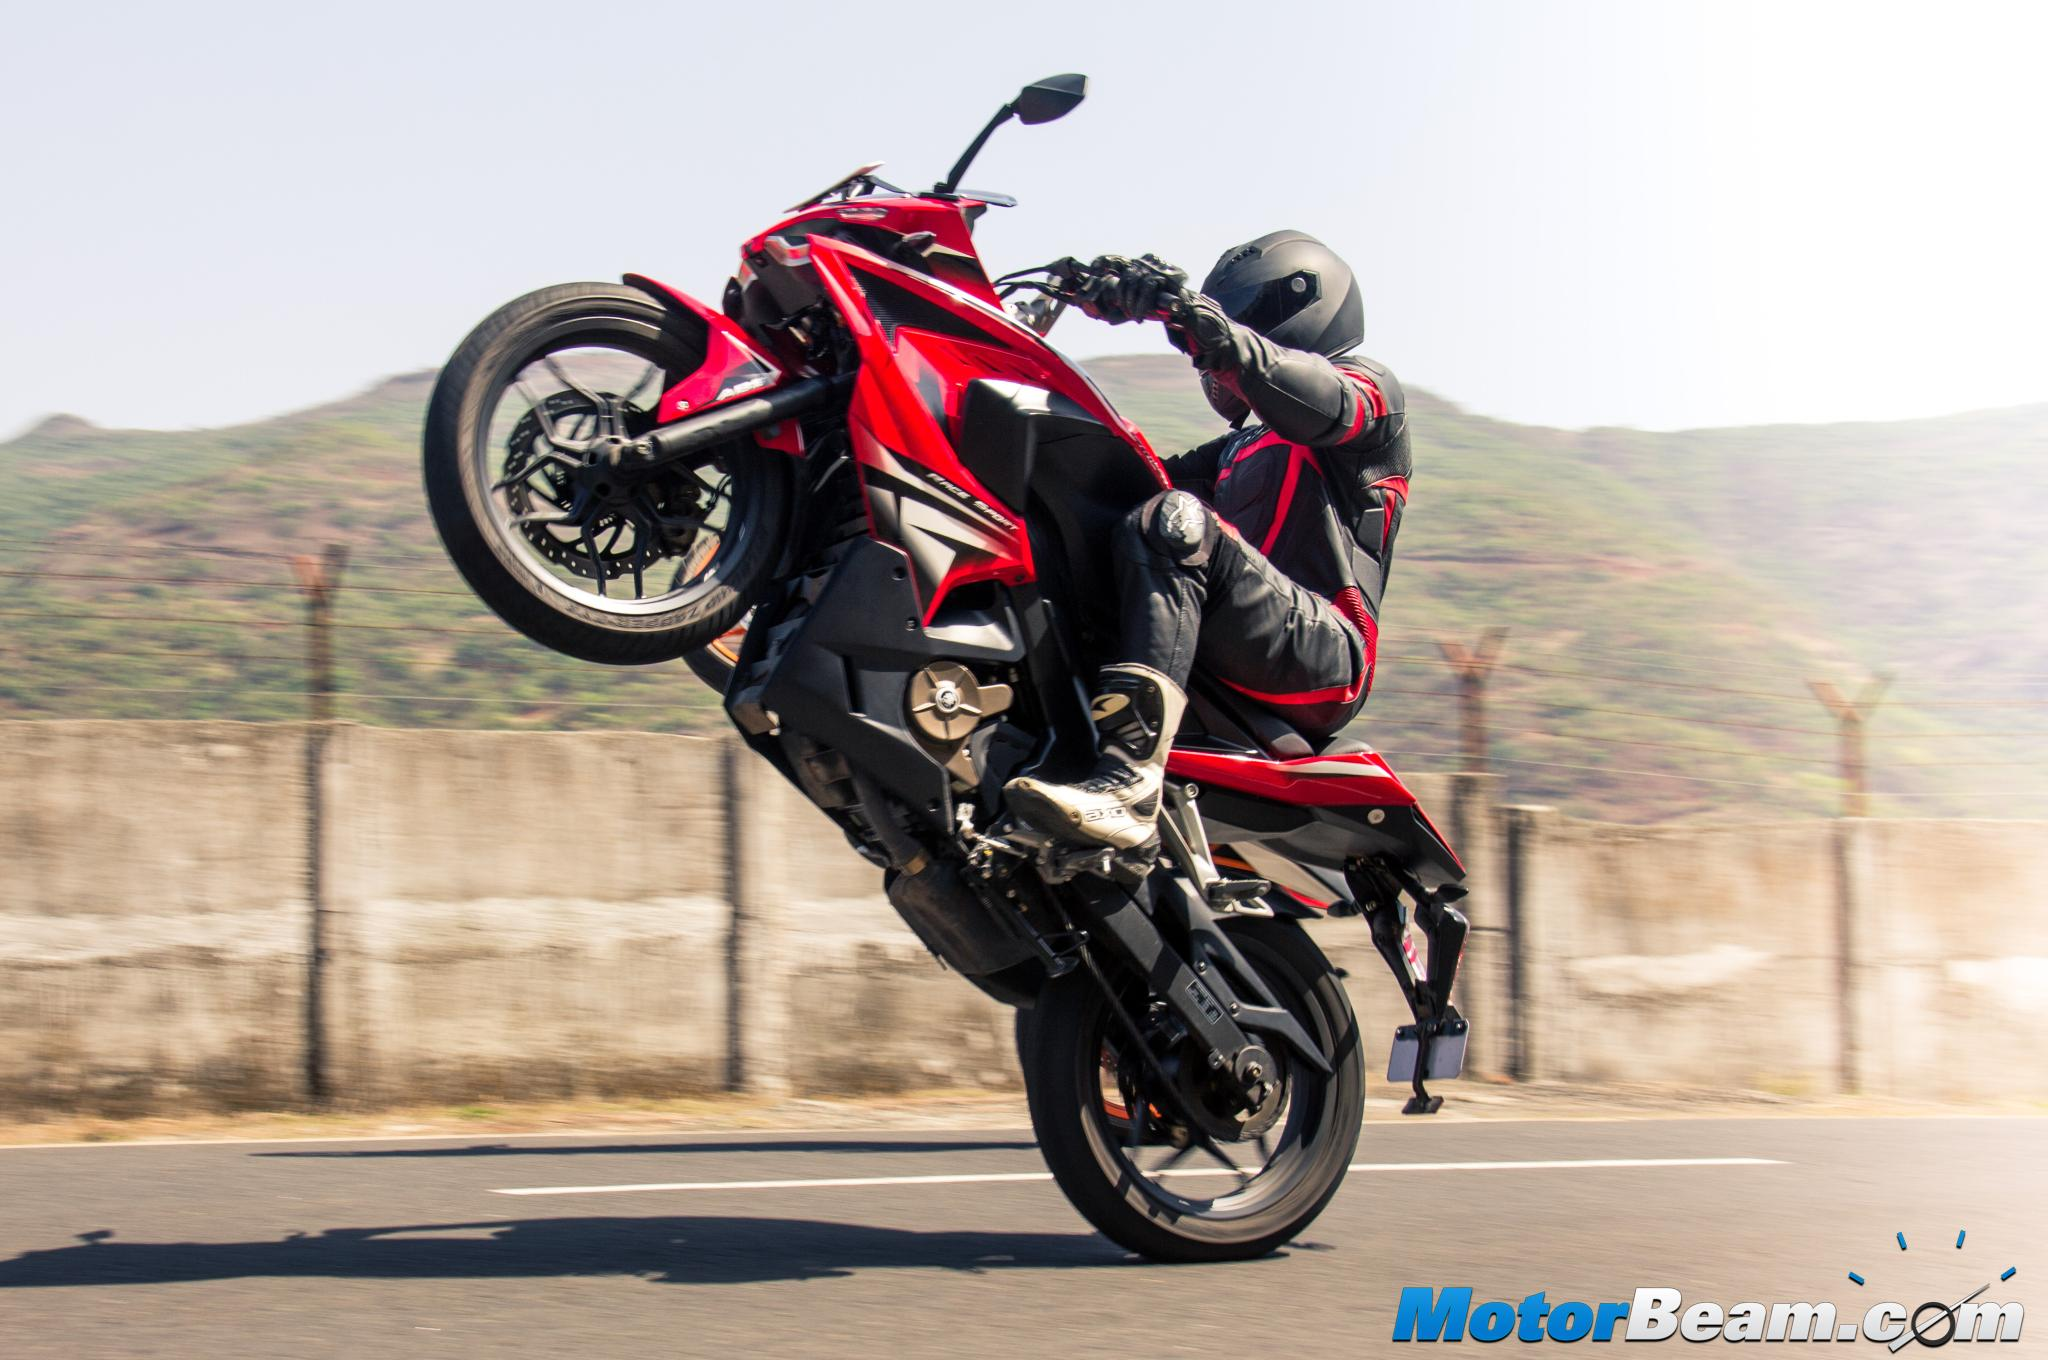 two-wheeler companies gear up to make abs standard